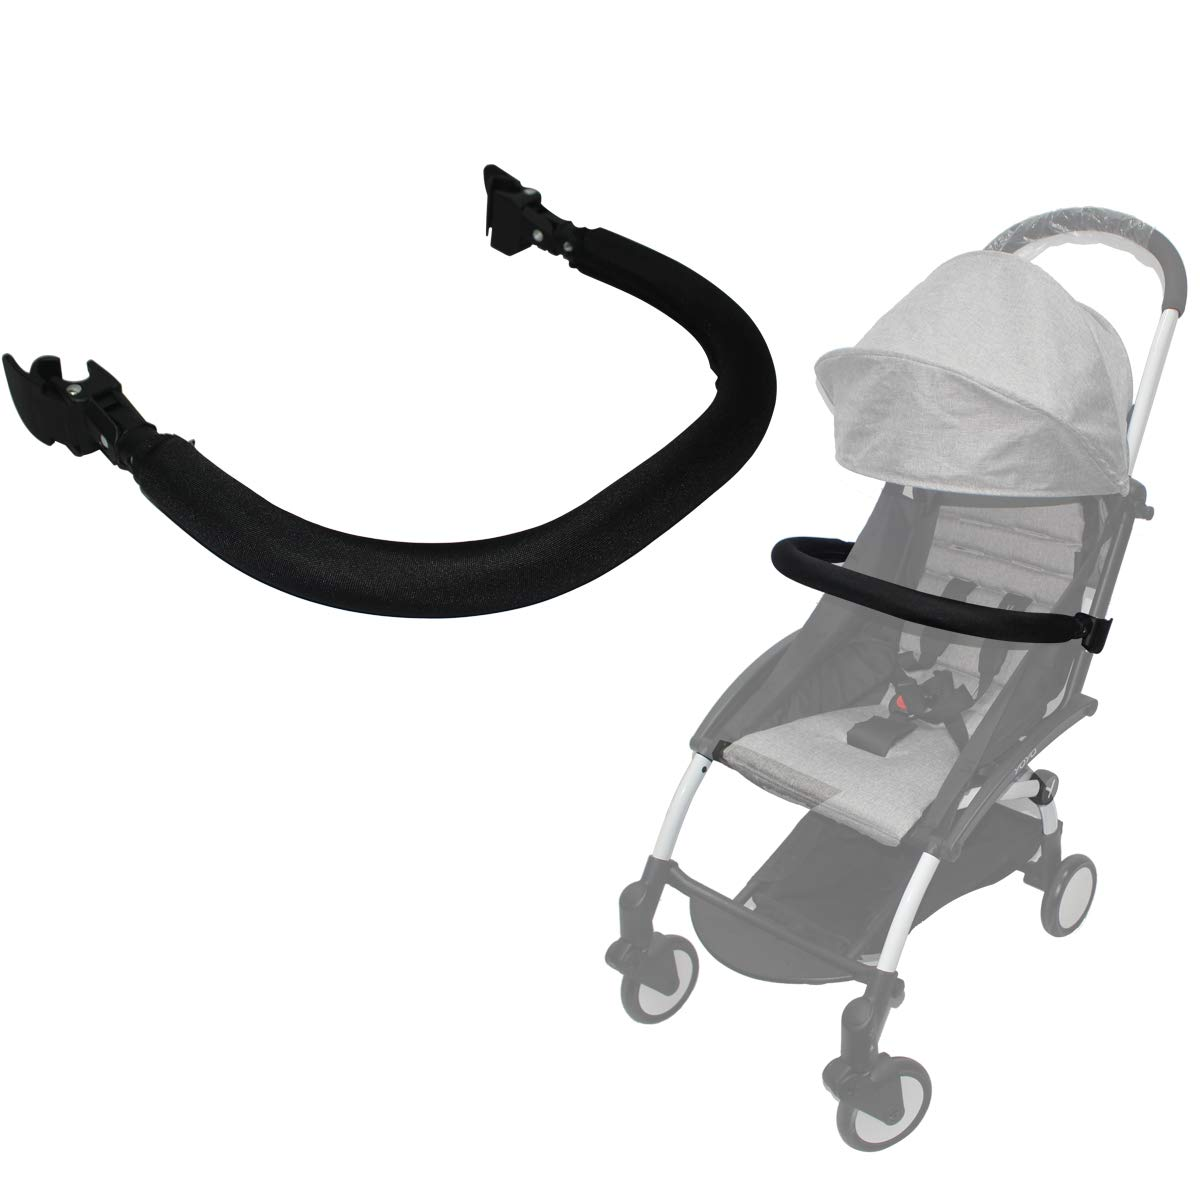 Amazon.com: Bumper Bar,Armrest,Handle,Crossbar for Babyzen YOYO YOYO+ Baby Stroller (Oxford Cloth): Baby